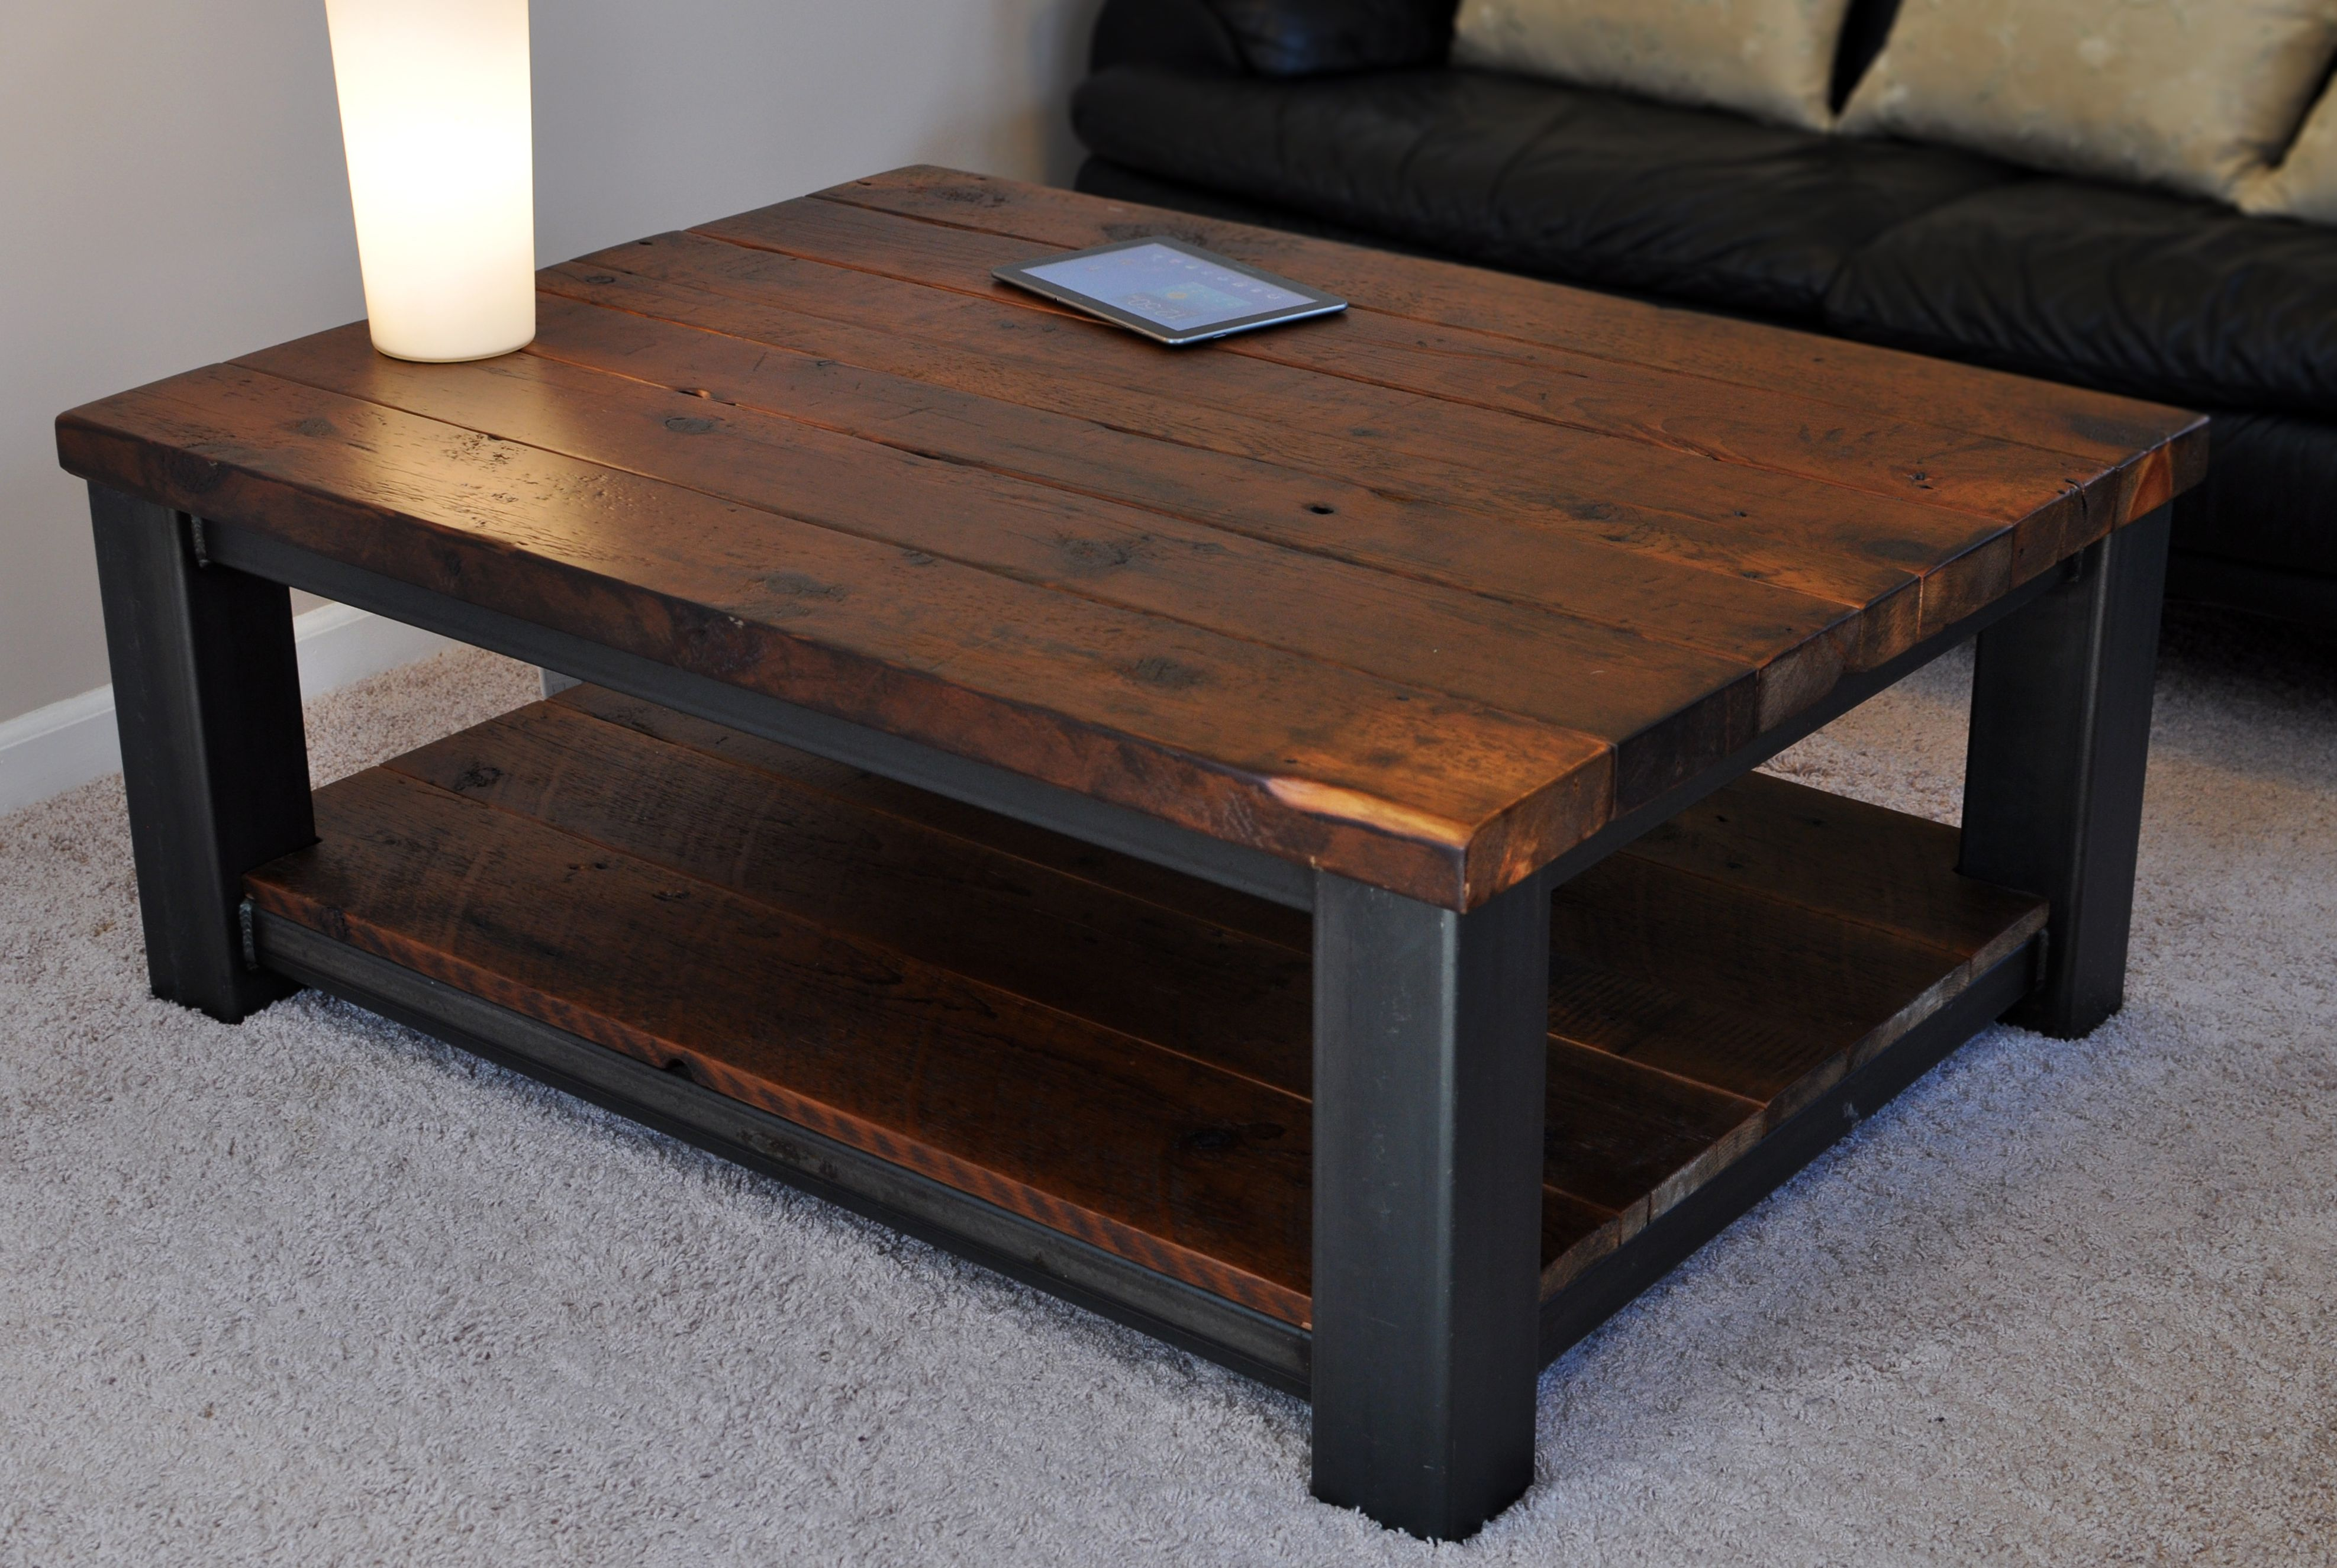 Reclaimed wood and metal coffee table by Rustic Refinery